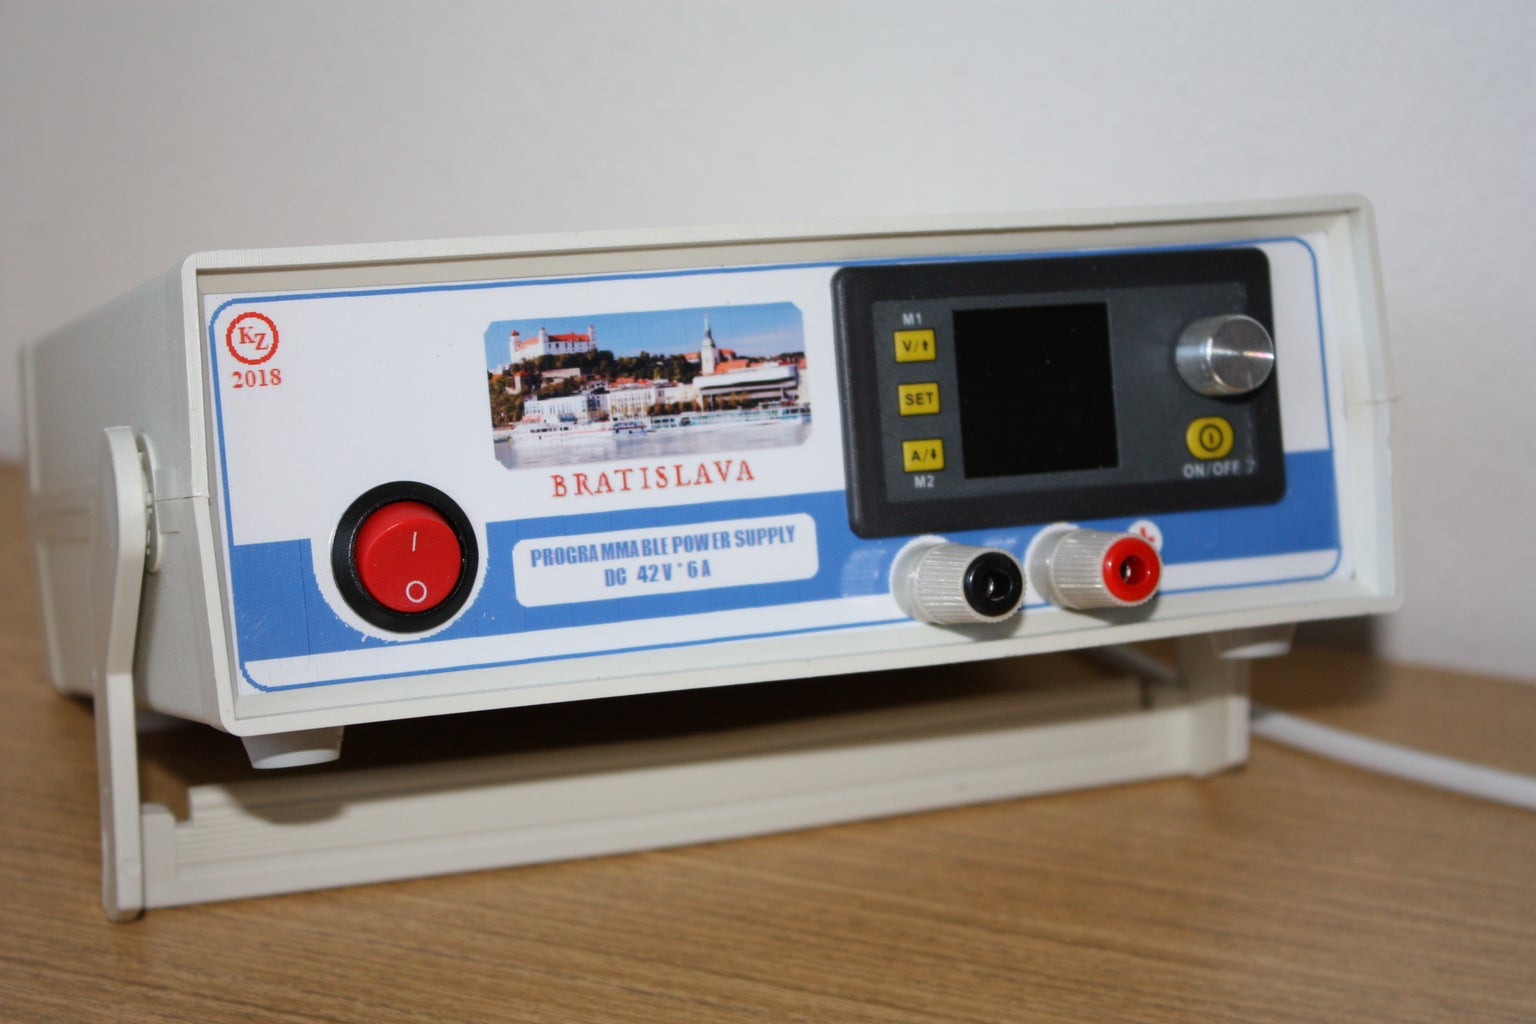 Programmable Power Supply 42V 6A